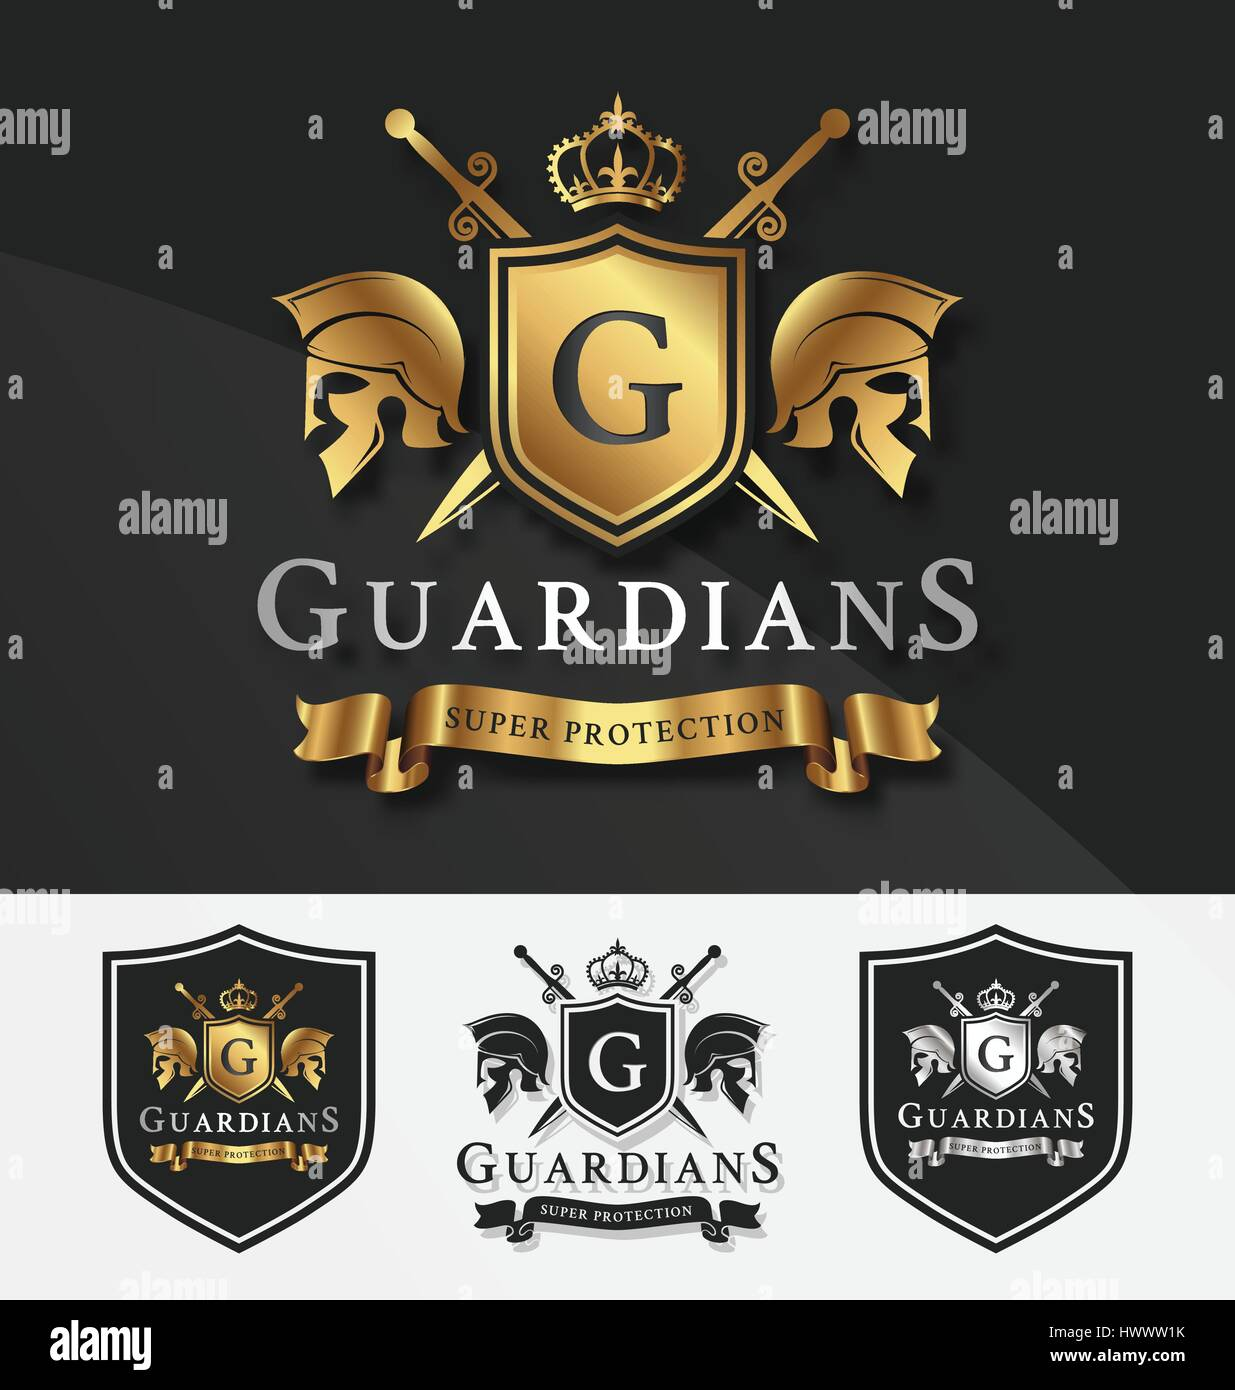 shield and two guardians with cross knight crest logo template for